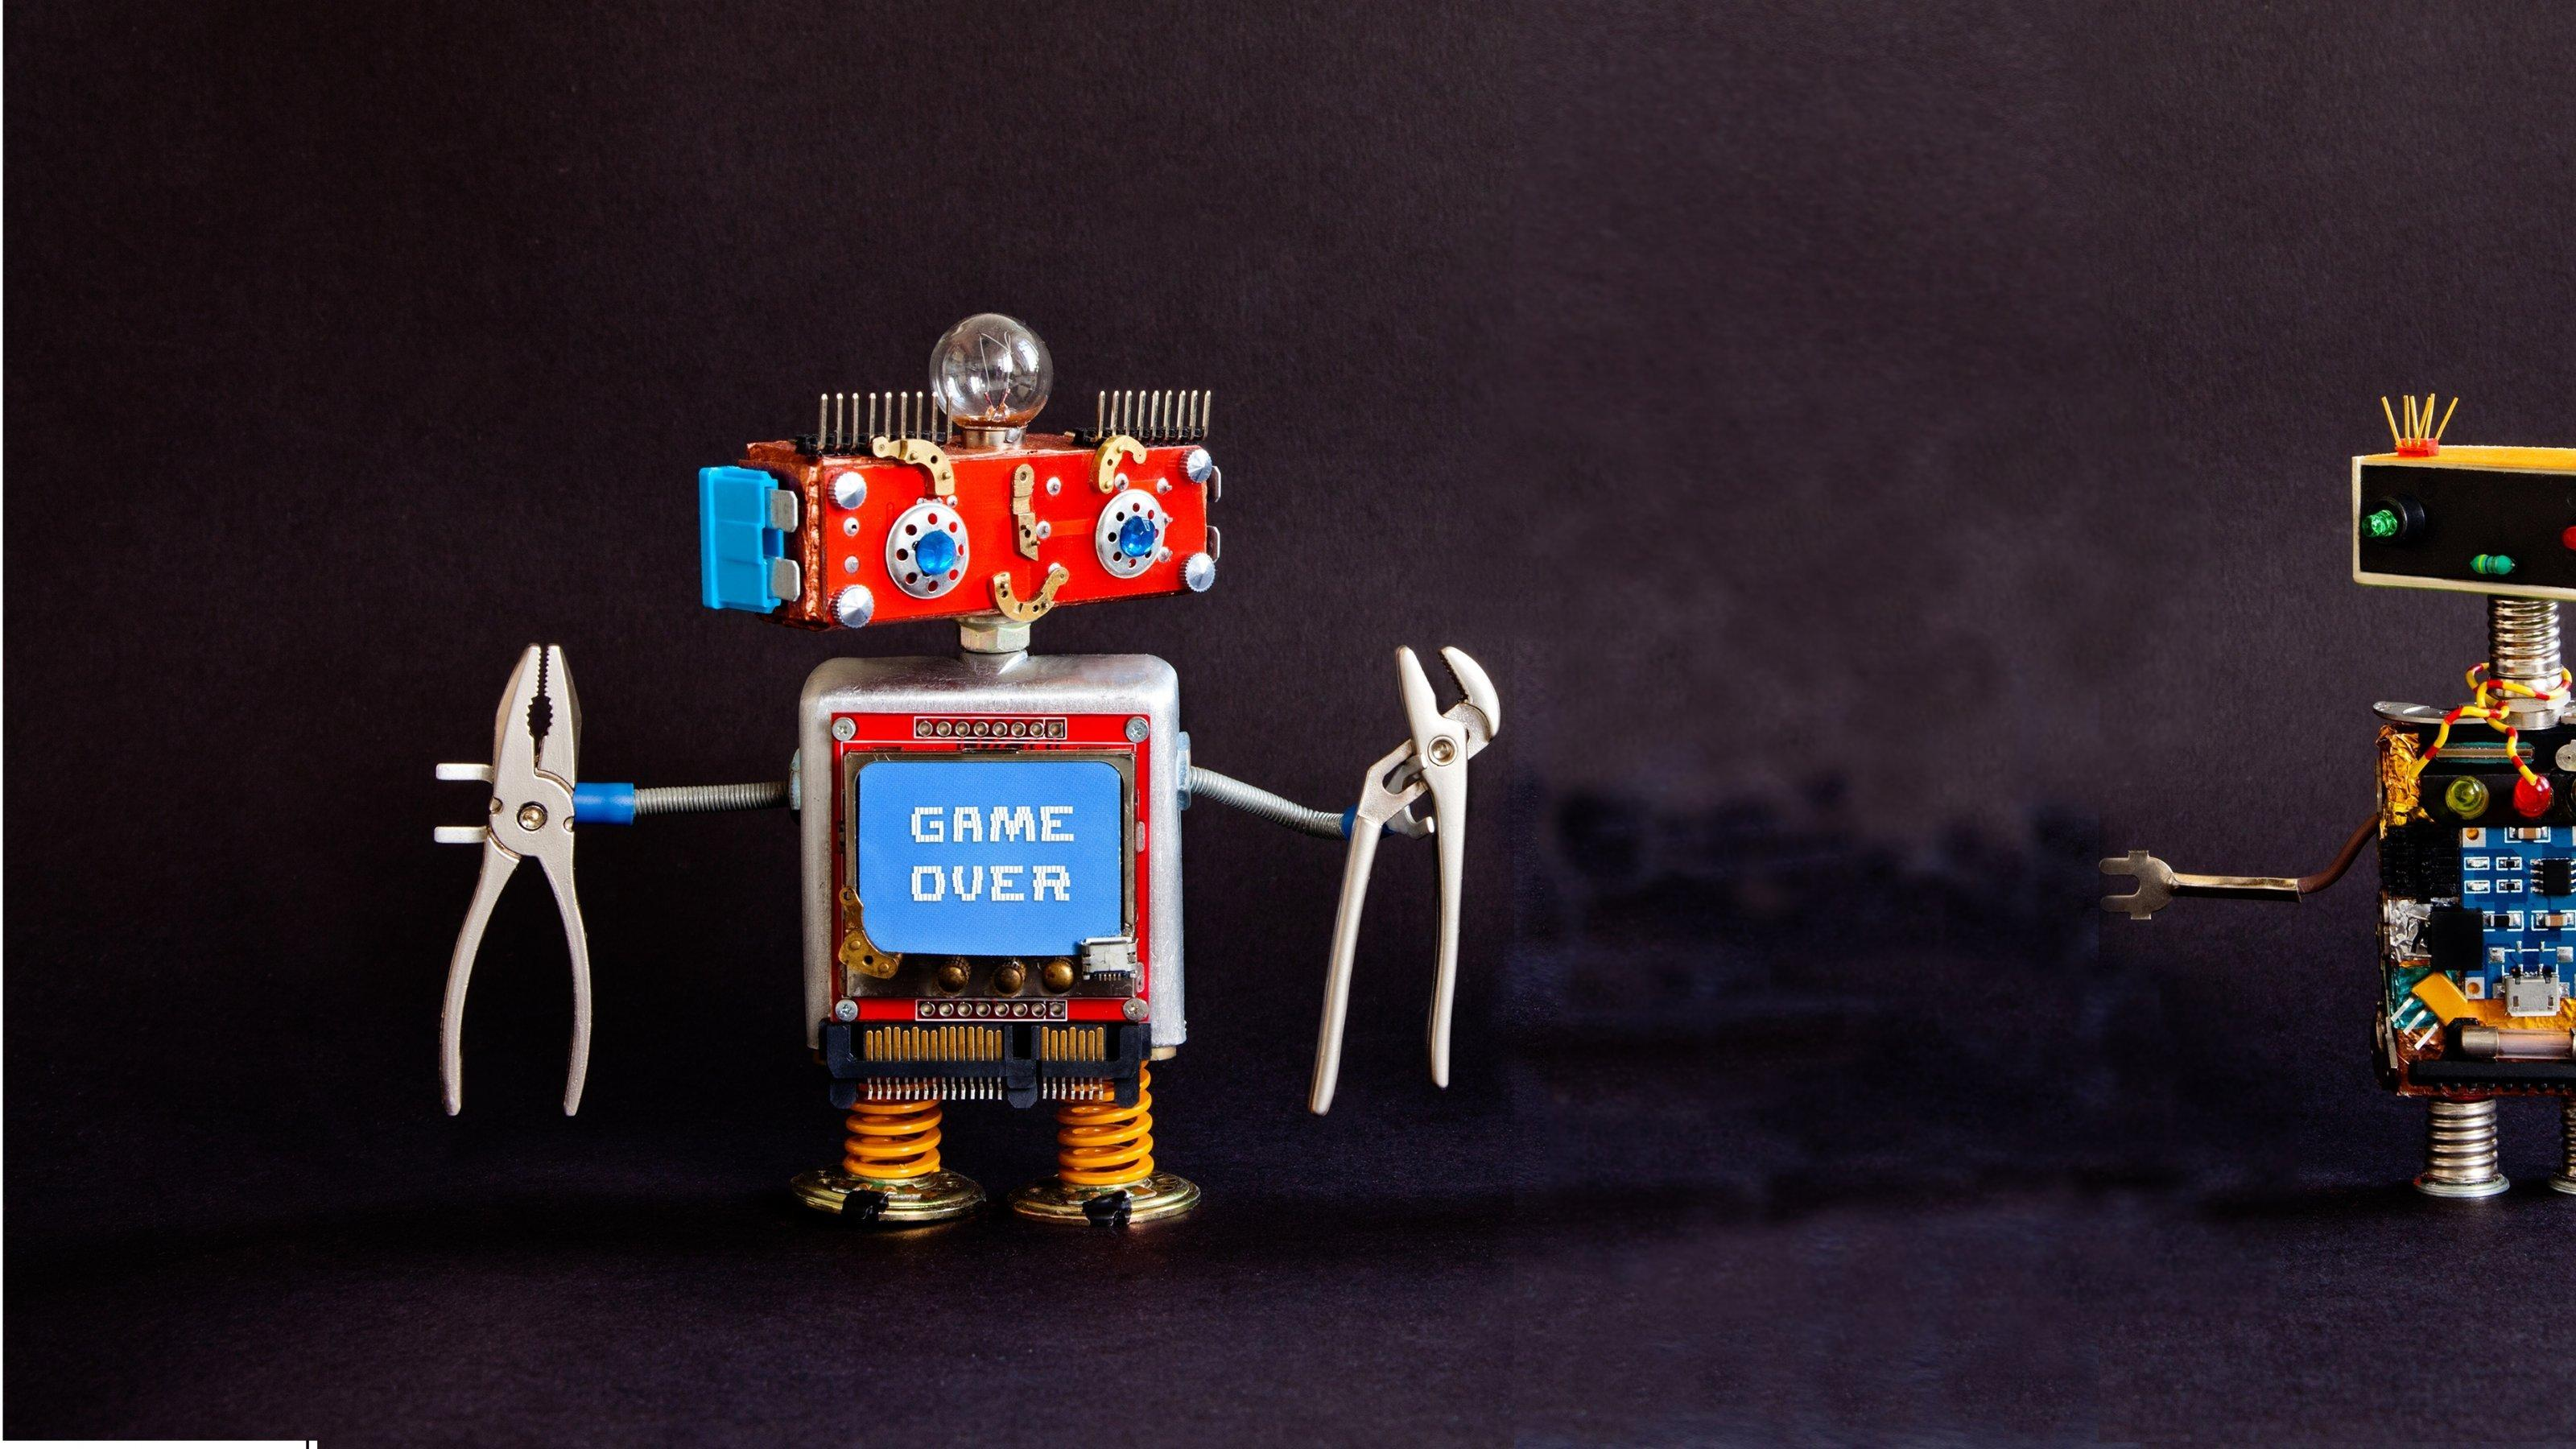 Two journalism roboter with tools